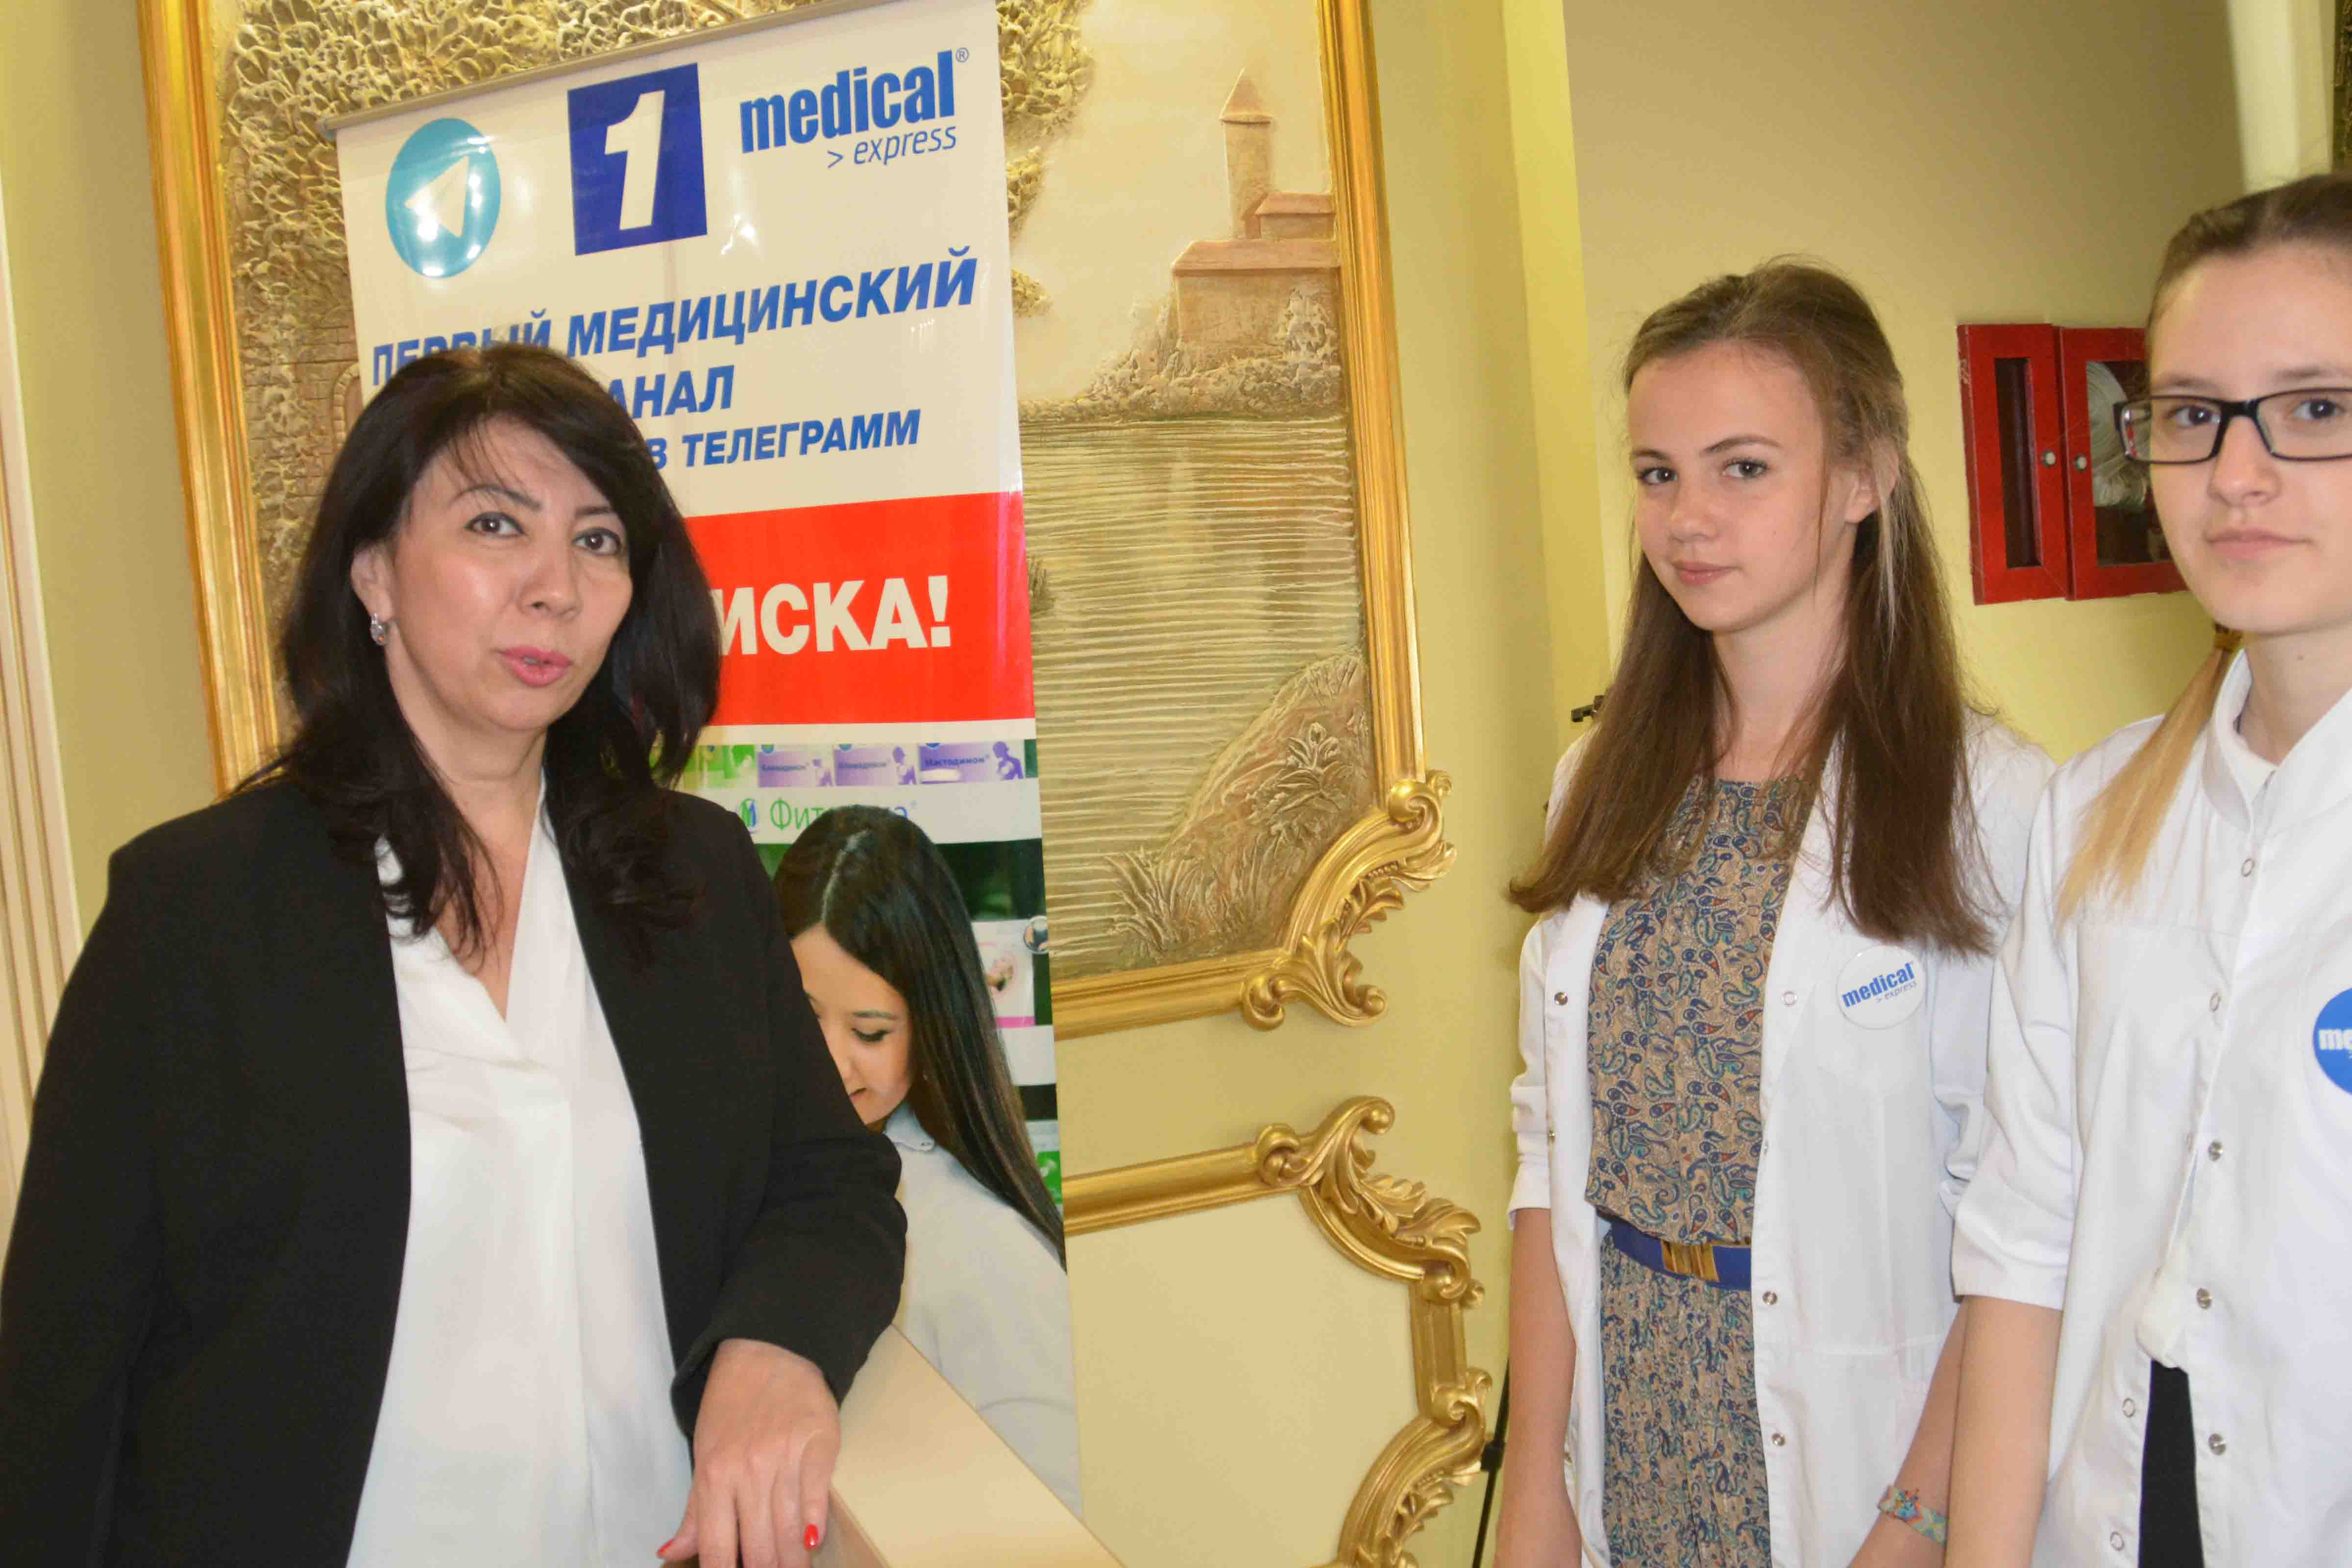 http://medicalexpress.ru/uploads/video-doklady/Egorov/DSC_7652.JPG